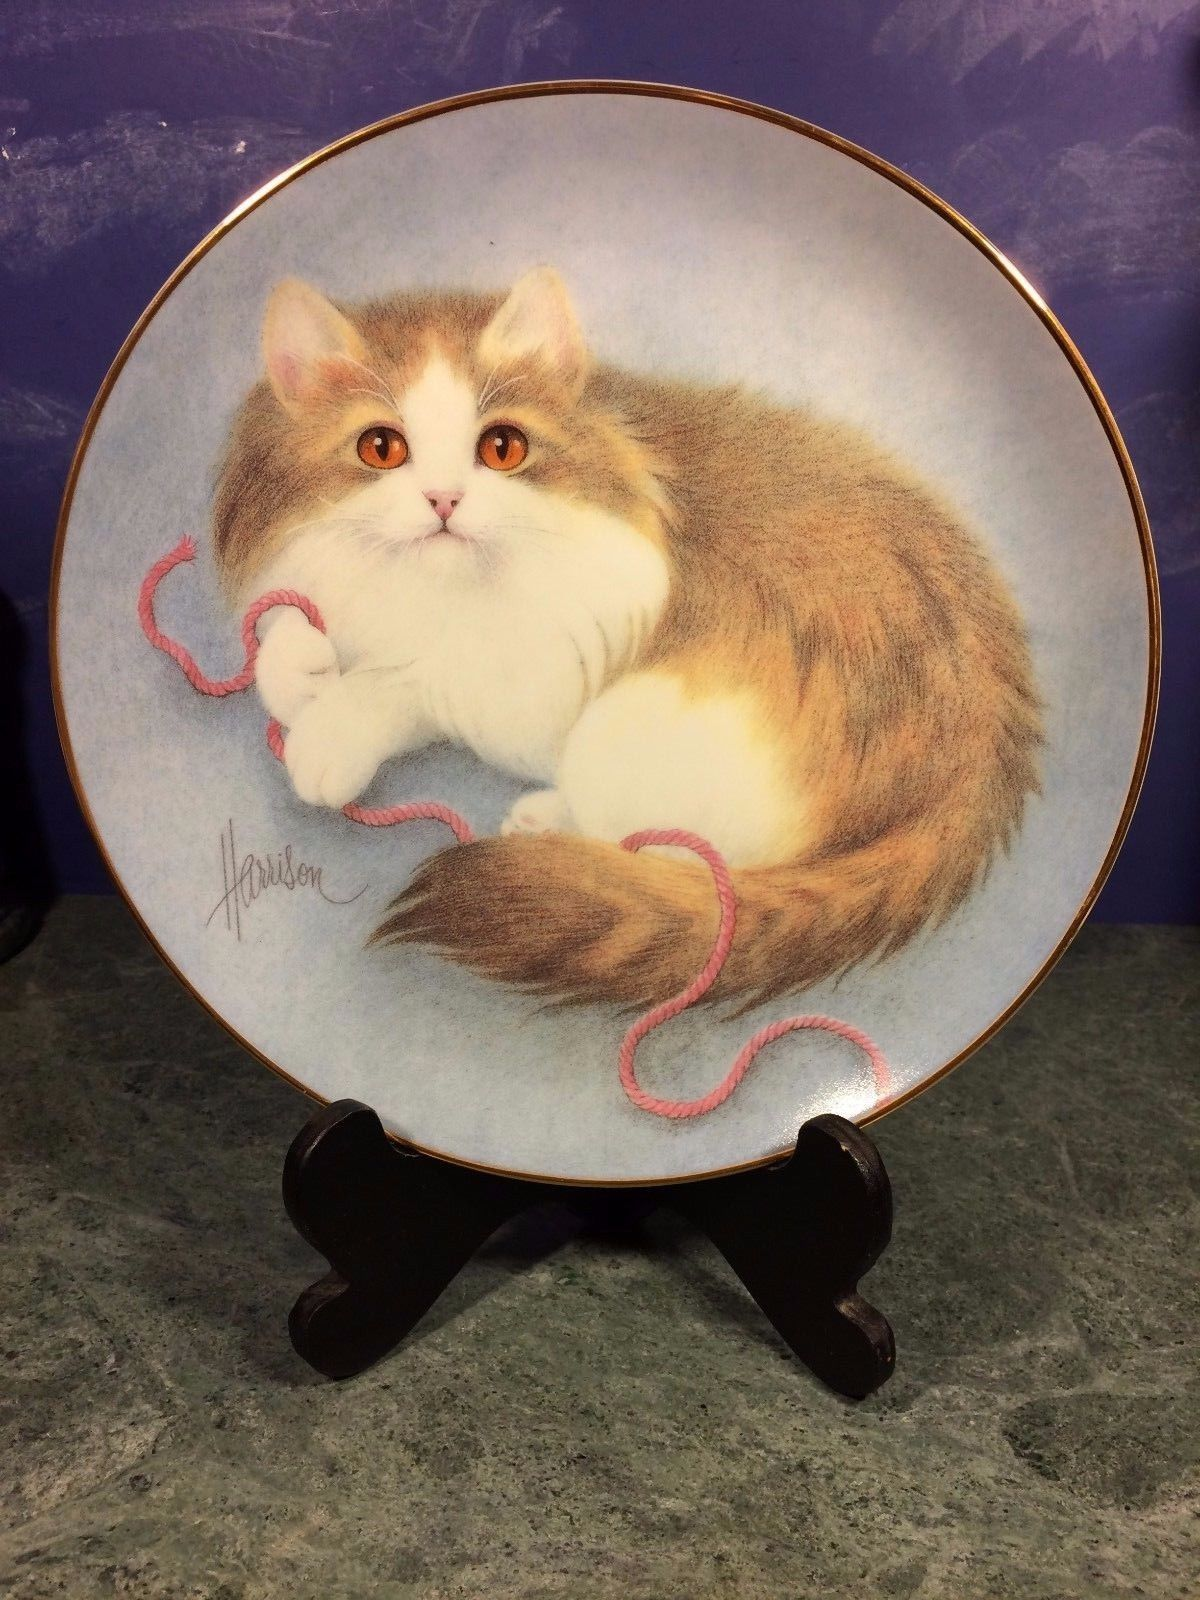 HAMILTON Collection CURIOUS KITTEN Plate ALL WOUND UP (1990) Bob Harrison + COA!